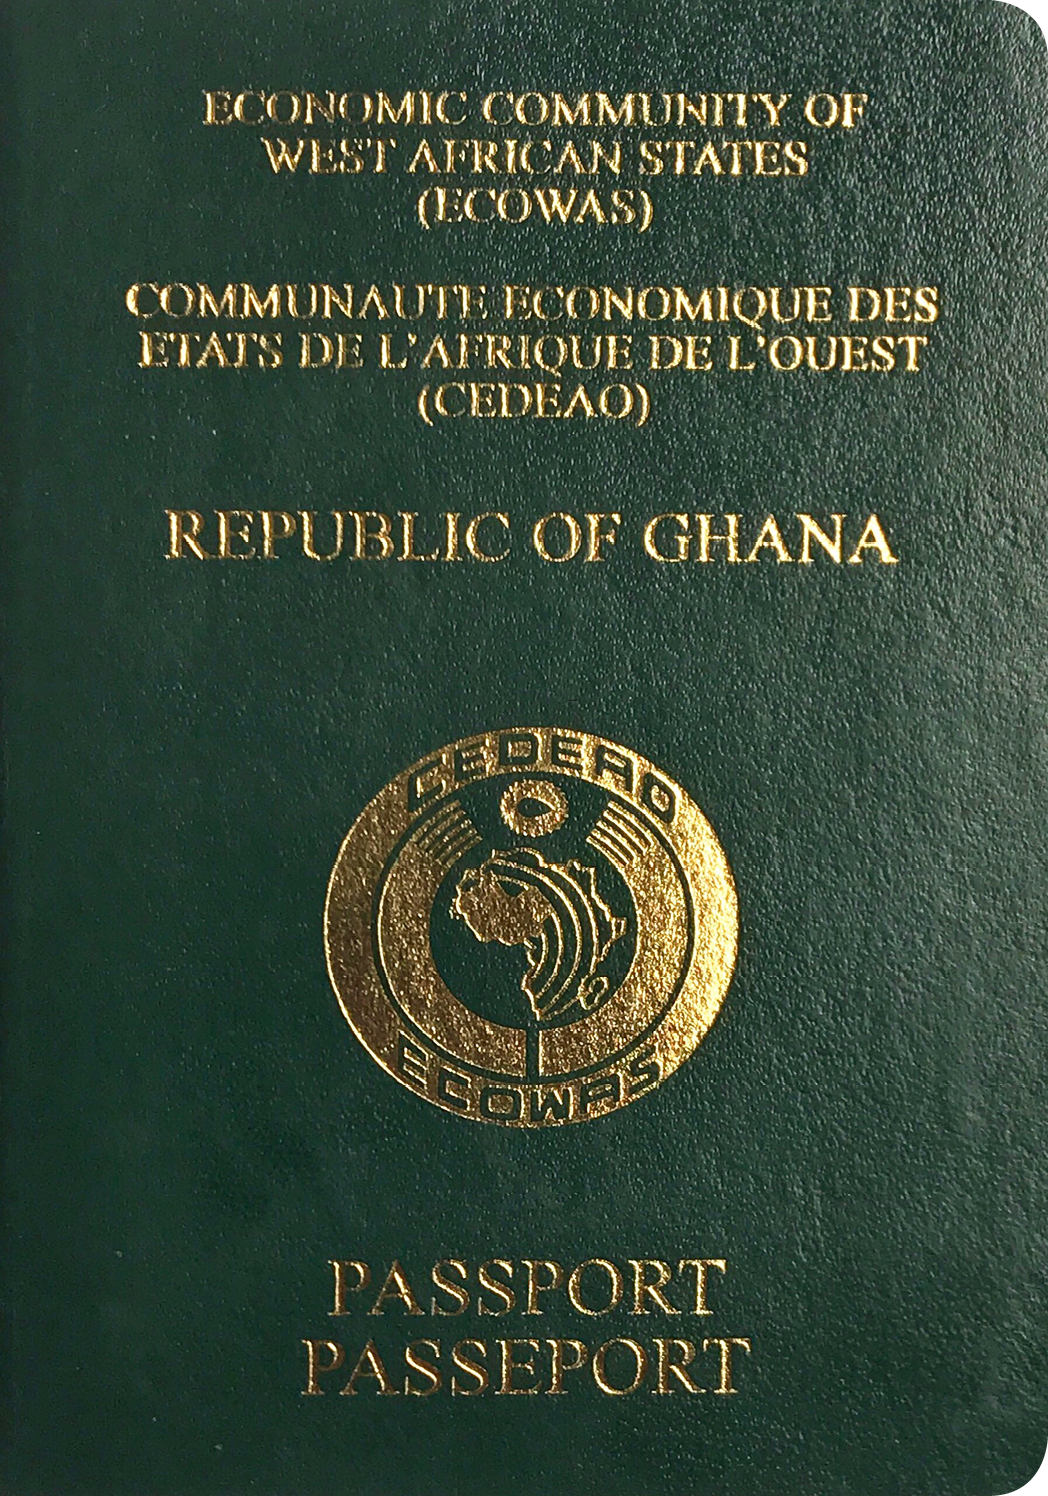 A regular or ordinary Ghanaian passport - Front side